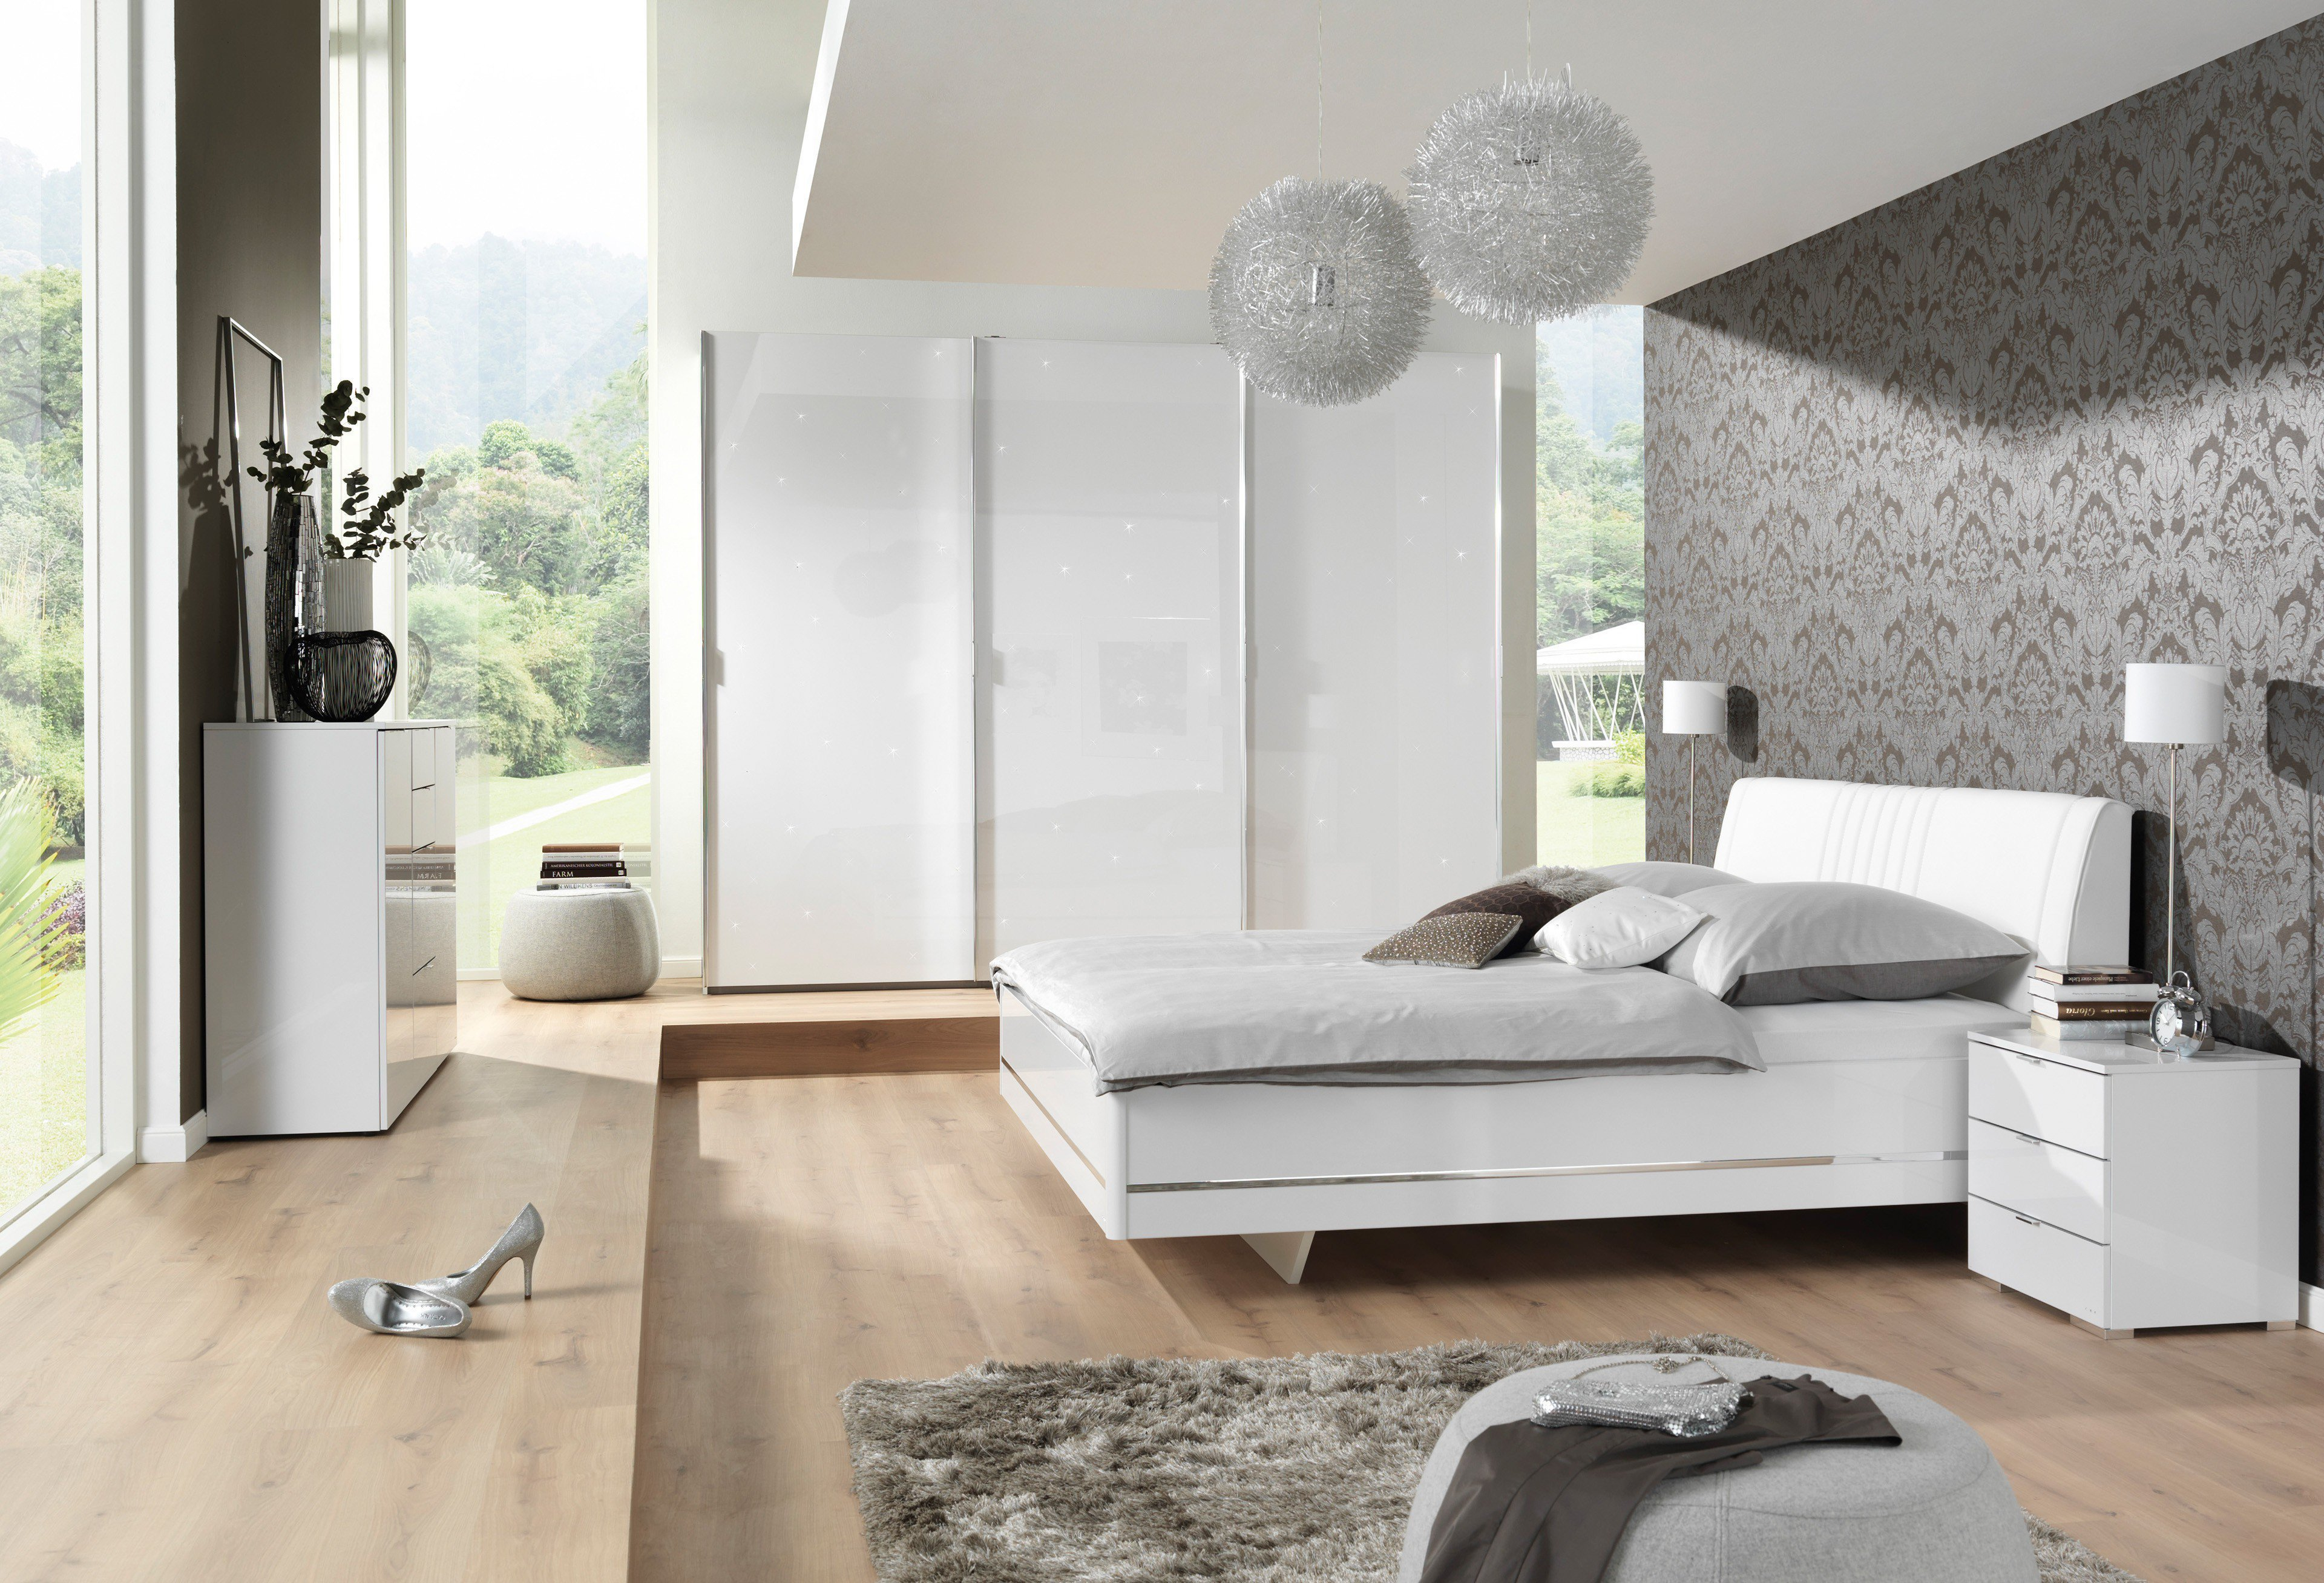 glamour von wellem bel schlafzimmer sternenhimmel m bel. Black Bedroom Furniture Sets. Home Design Ideas